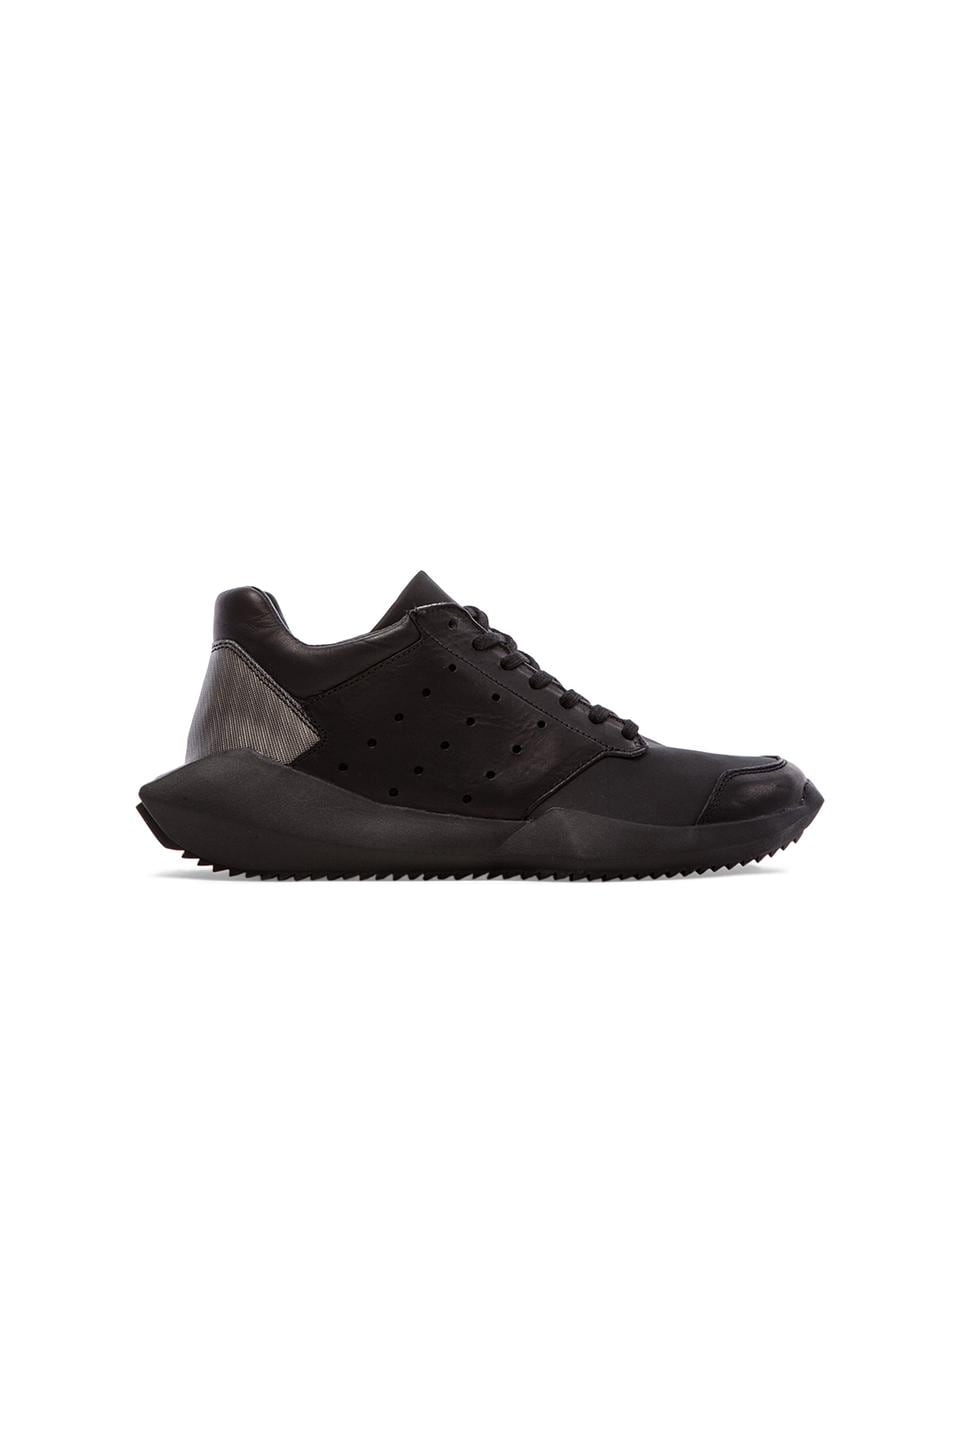 adidas by Rick Owens Tech Runner in